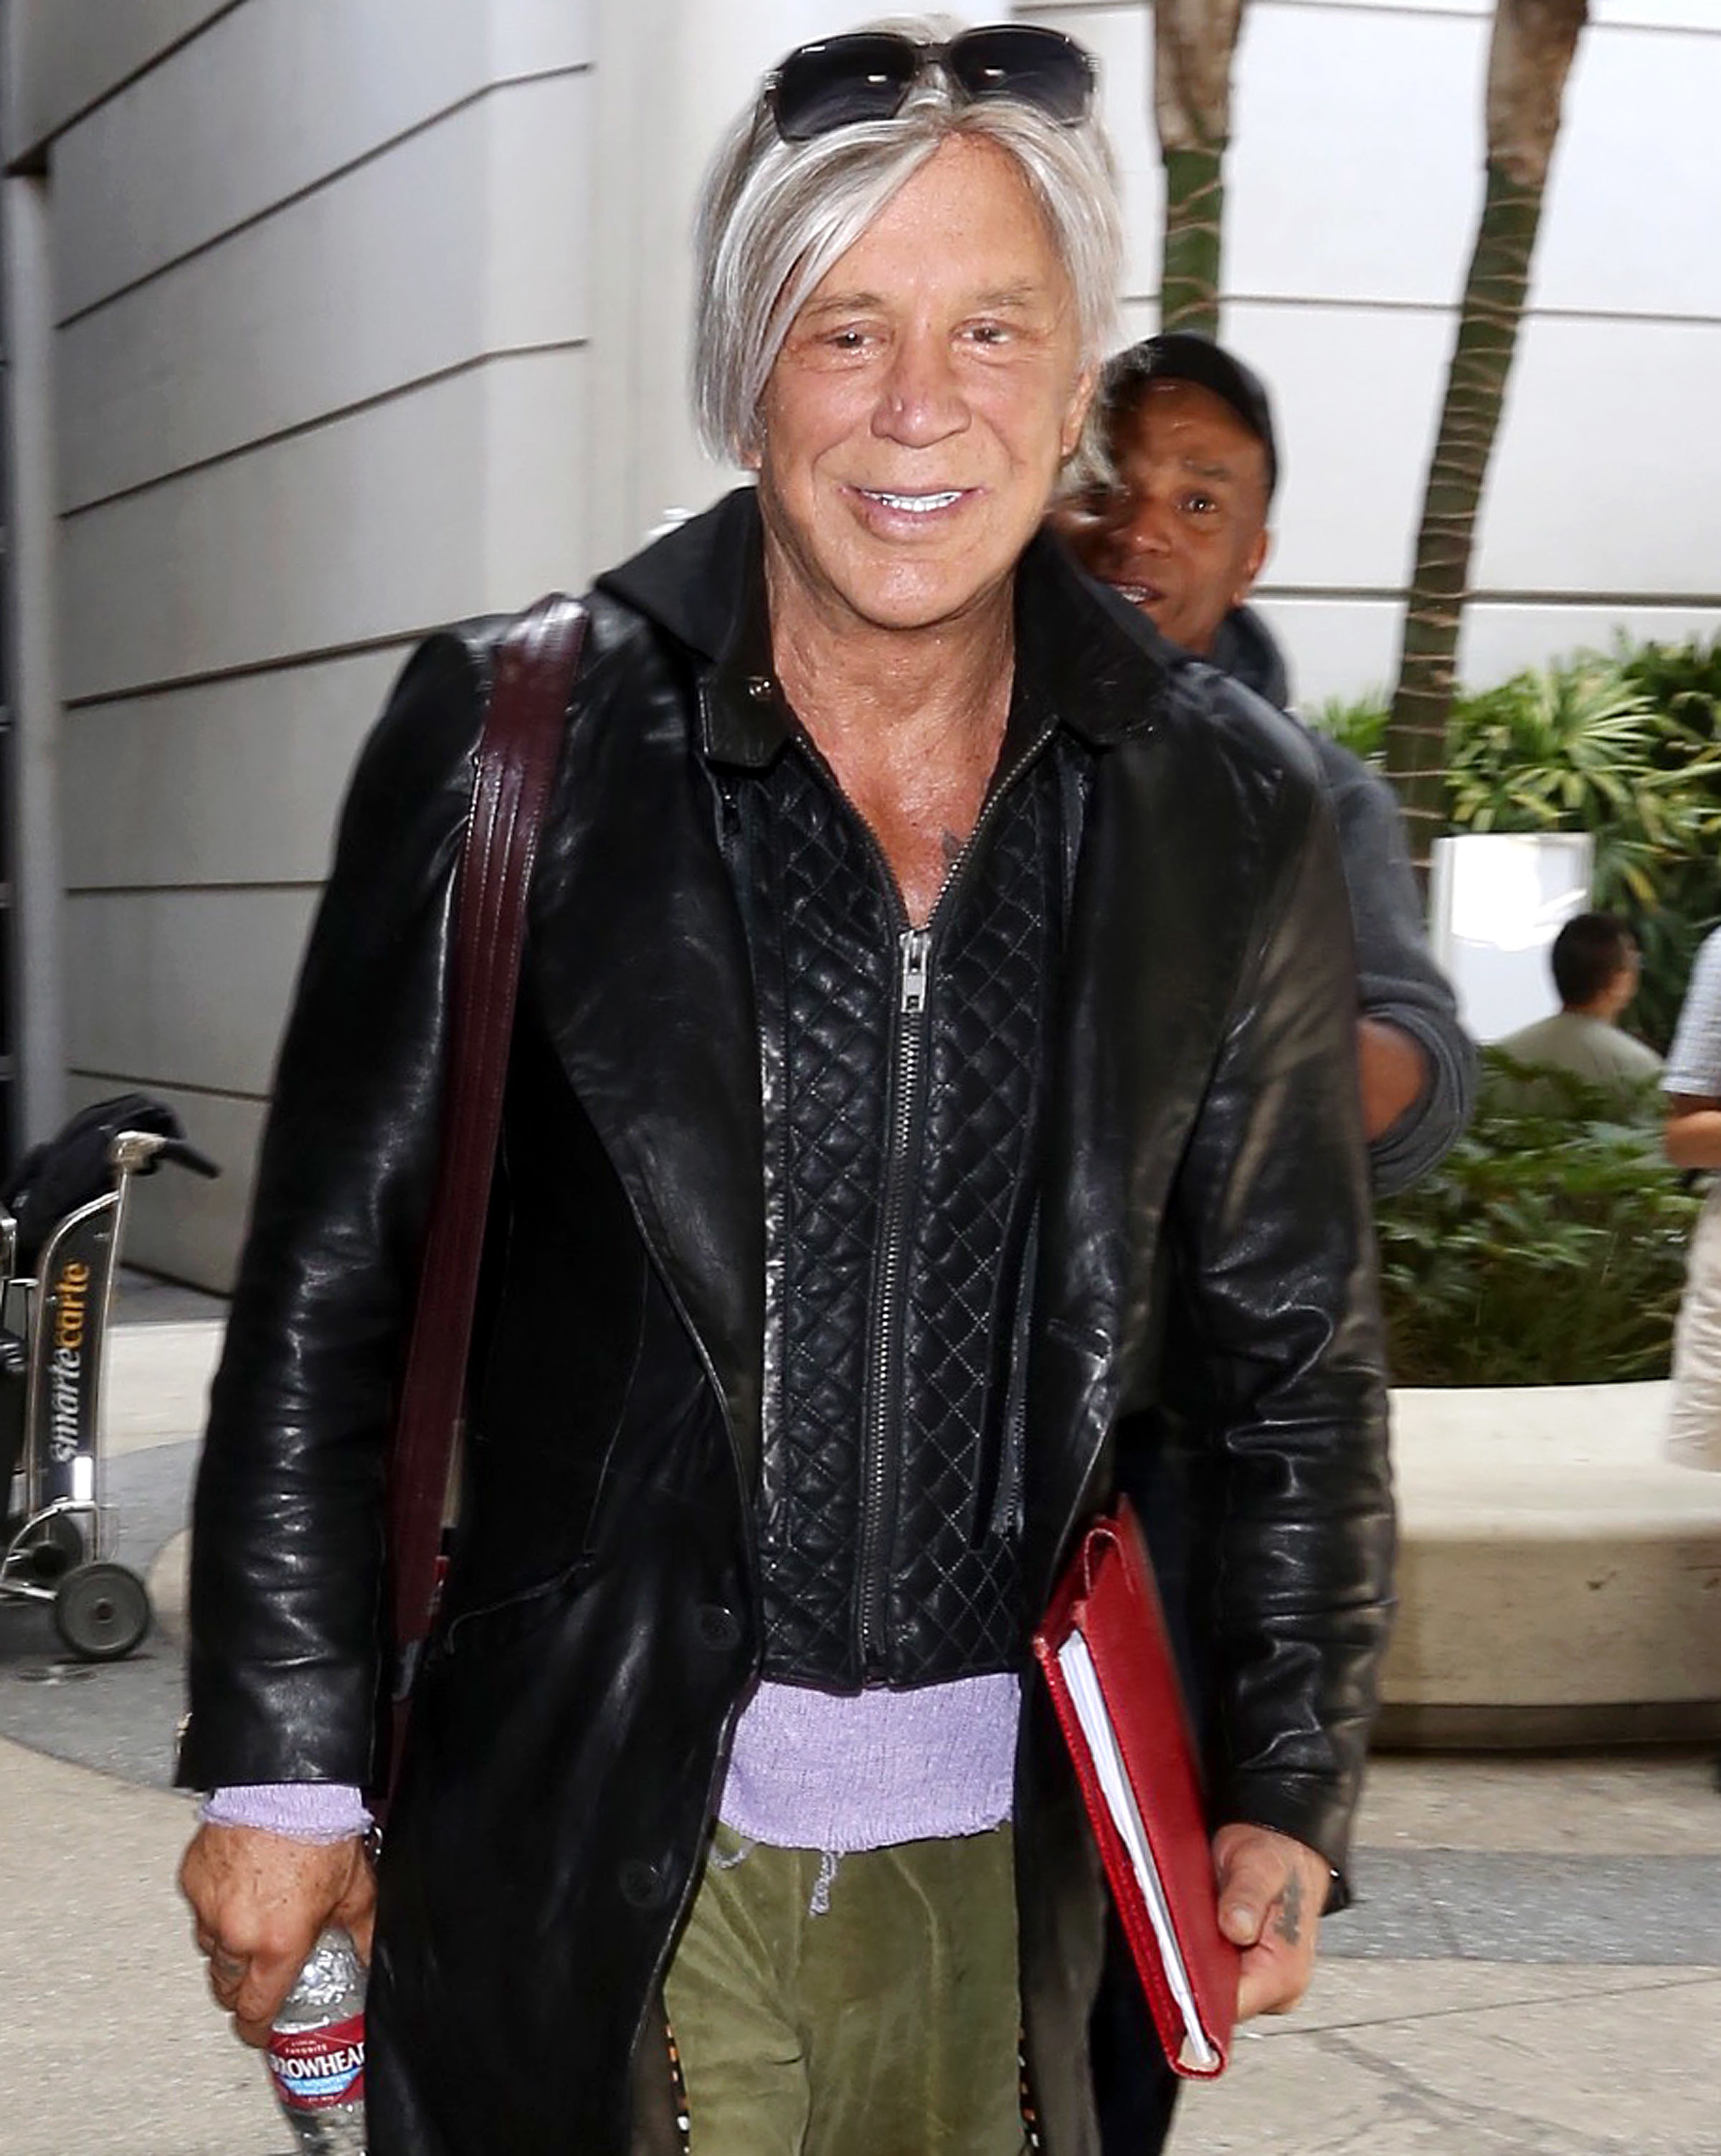 Mickey Rourke arrives at Los Angeles International Airport on Aug. 11, 2017.